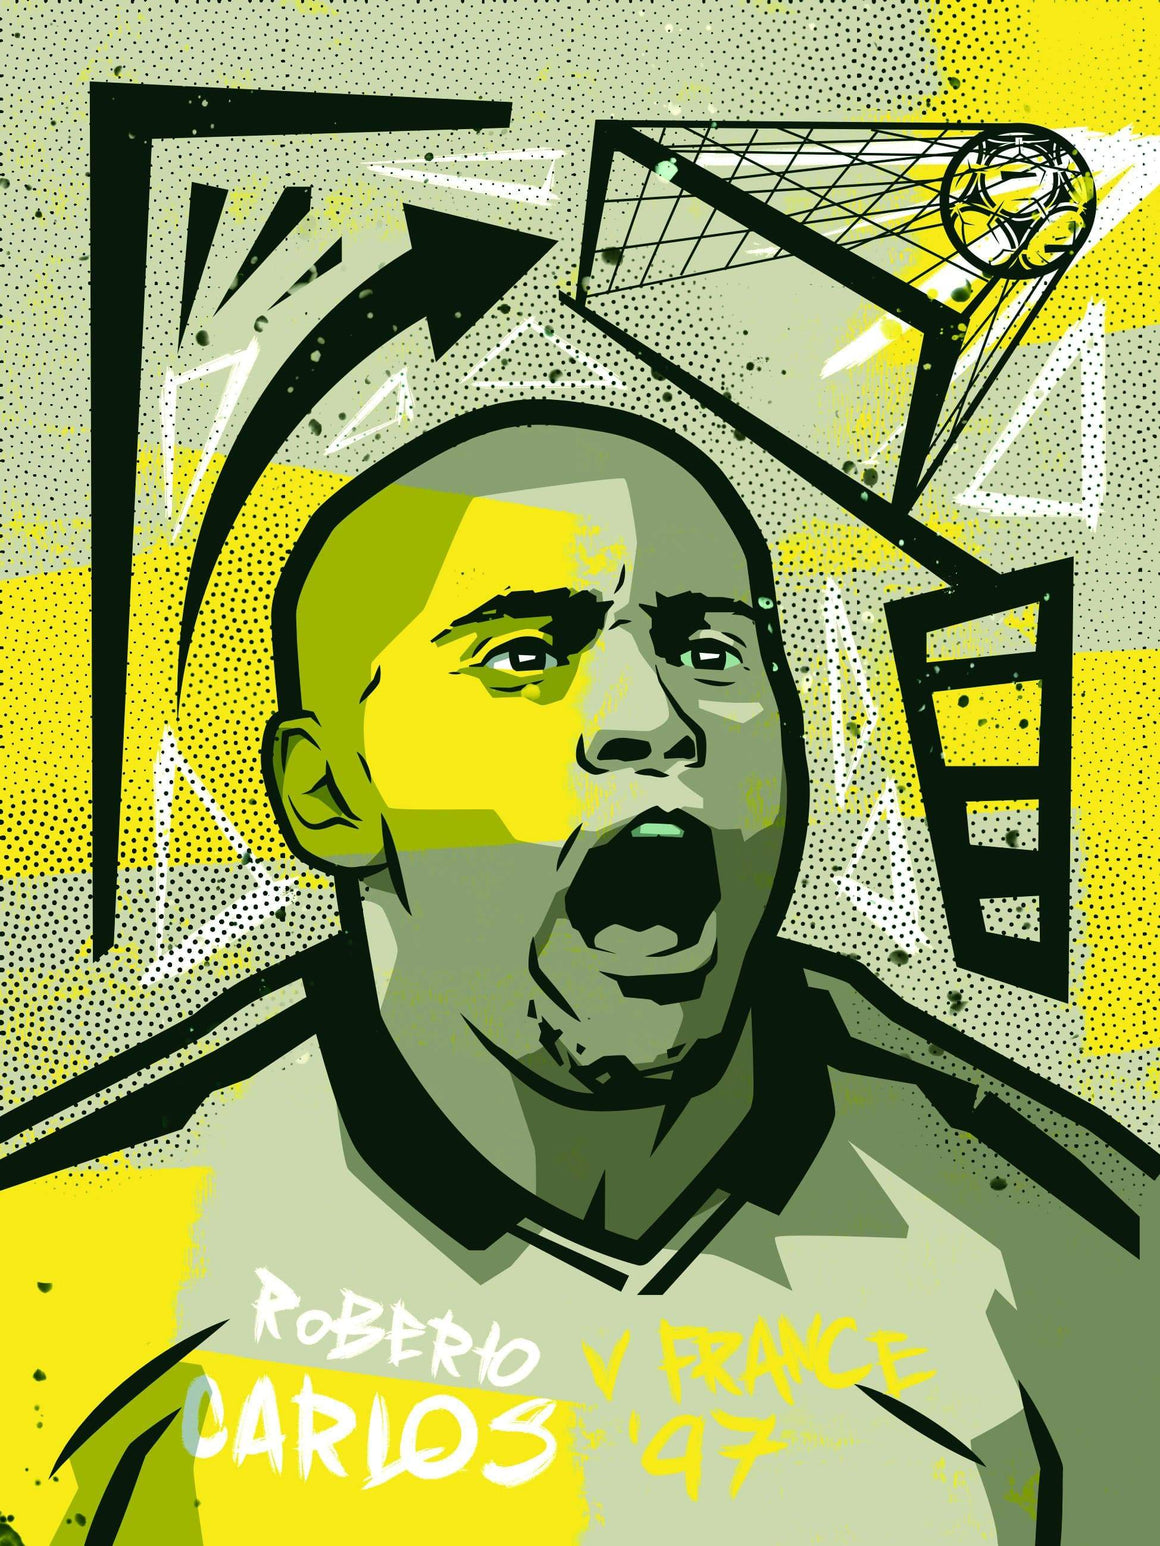 Roberto Carlos Brazil A3 print - Football Shirt Collective